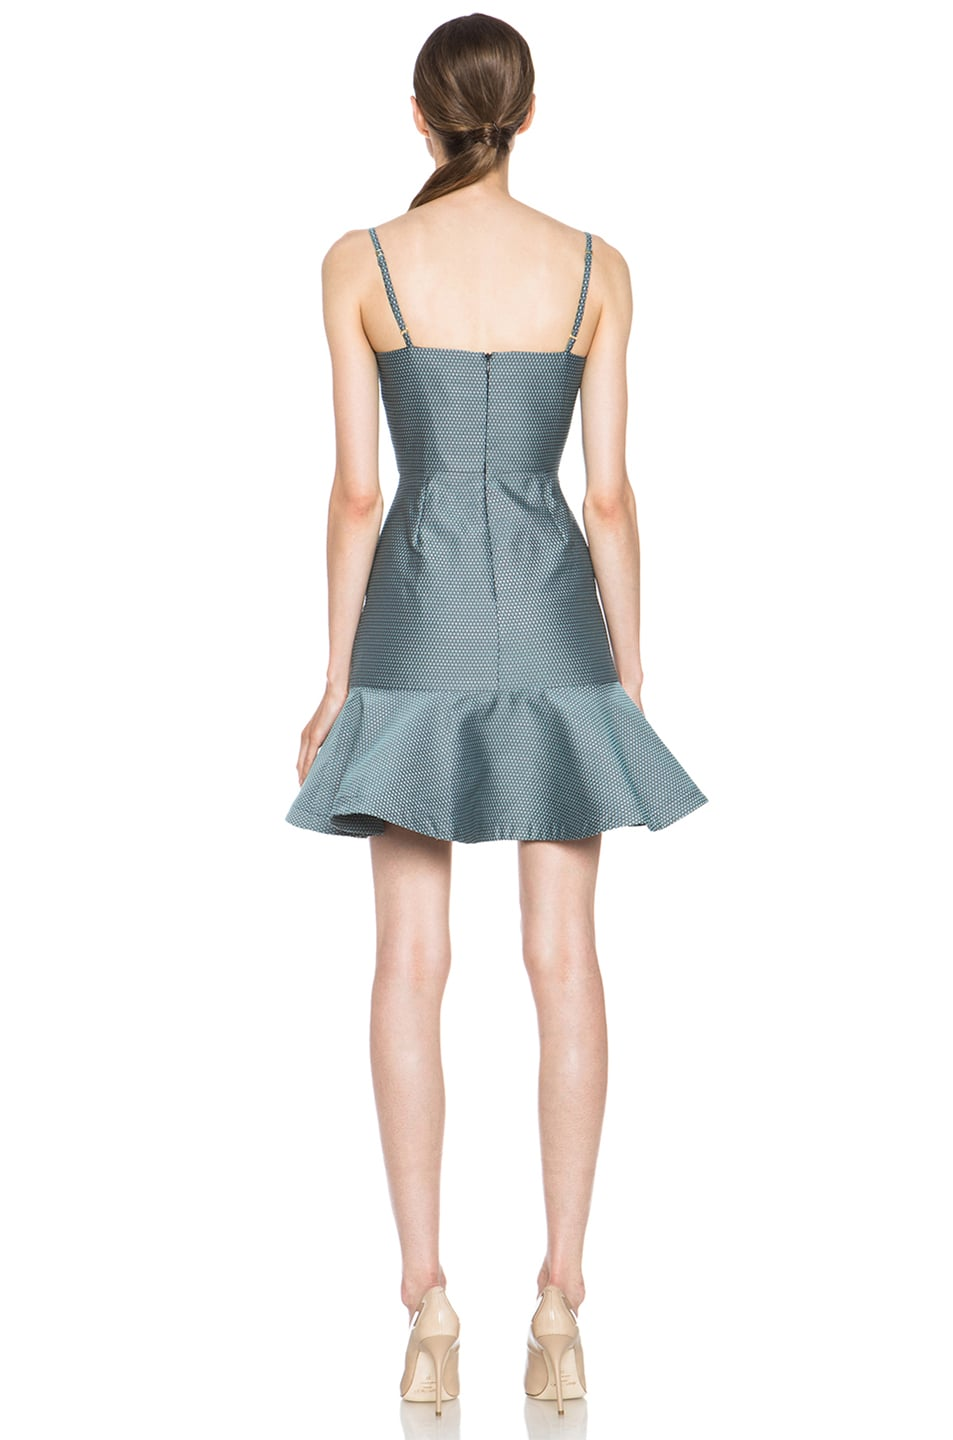 Image 4 of Opening Ceremony Calcite Poly-Blend Dress in Pool Blue